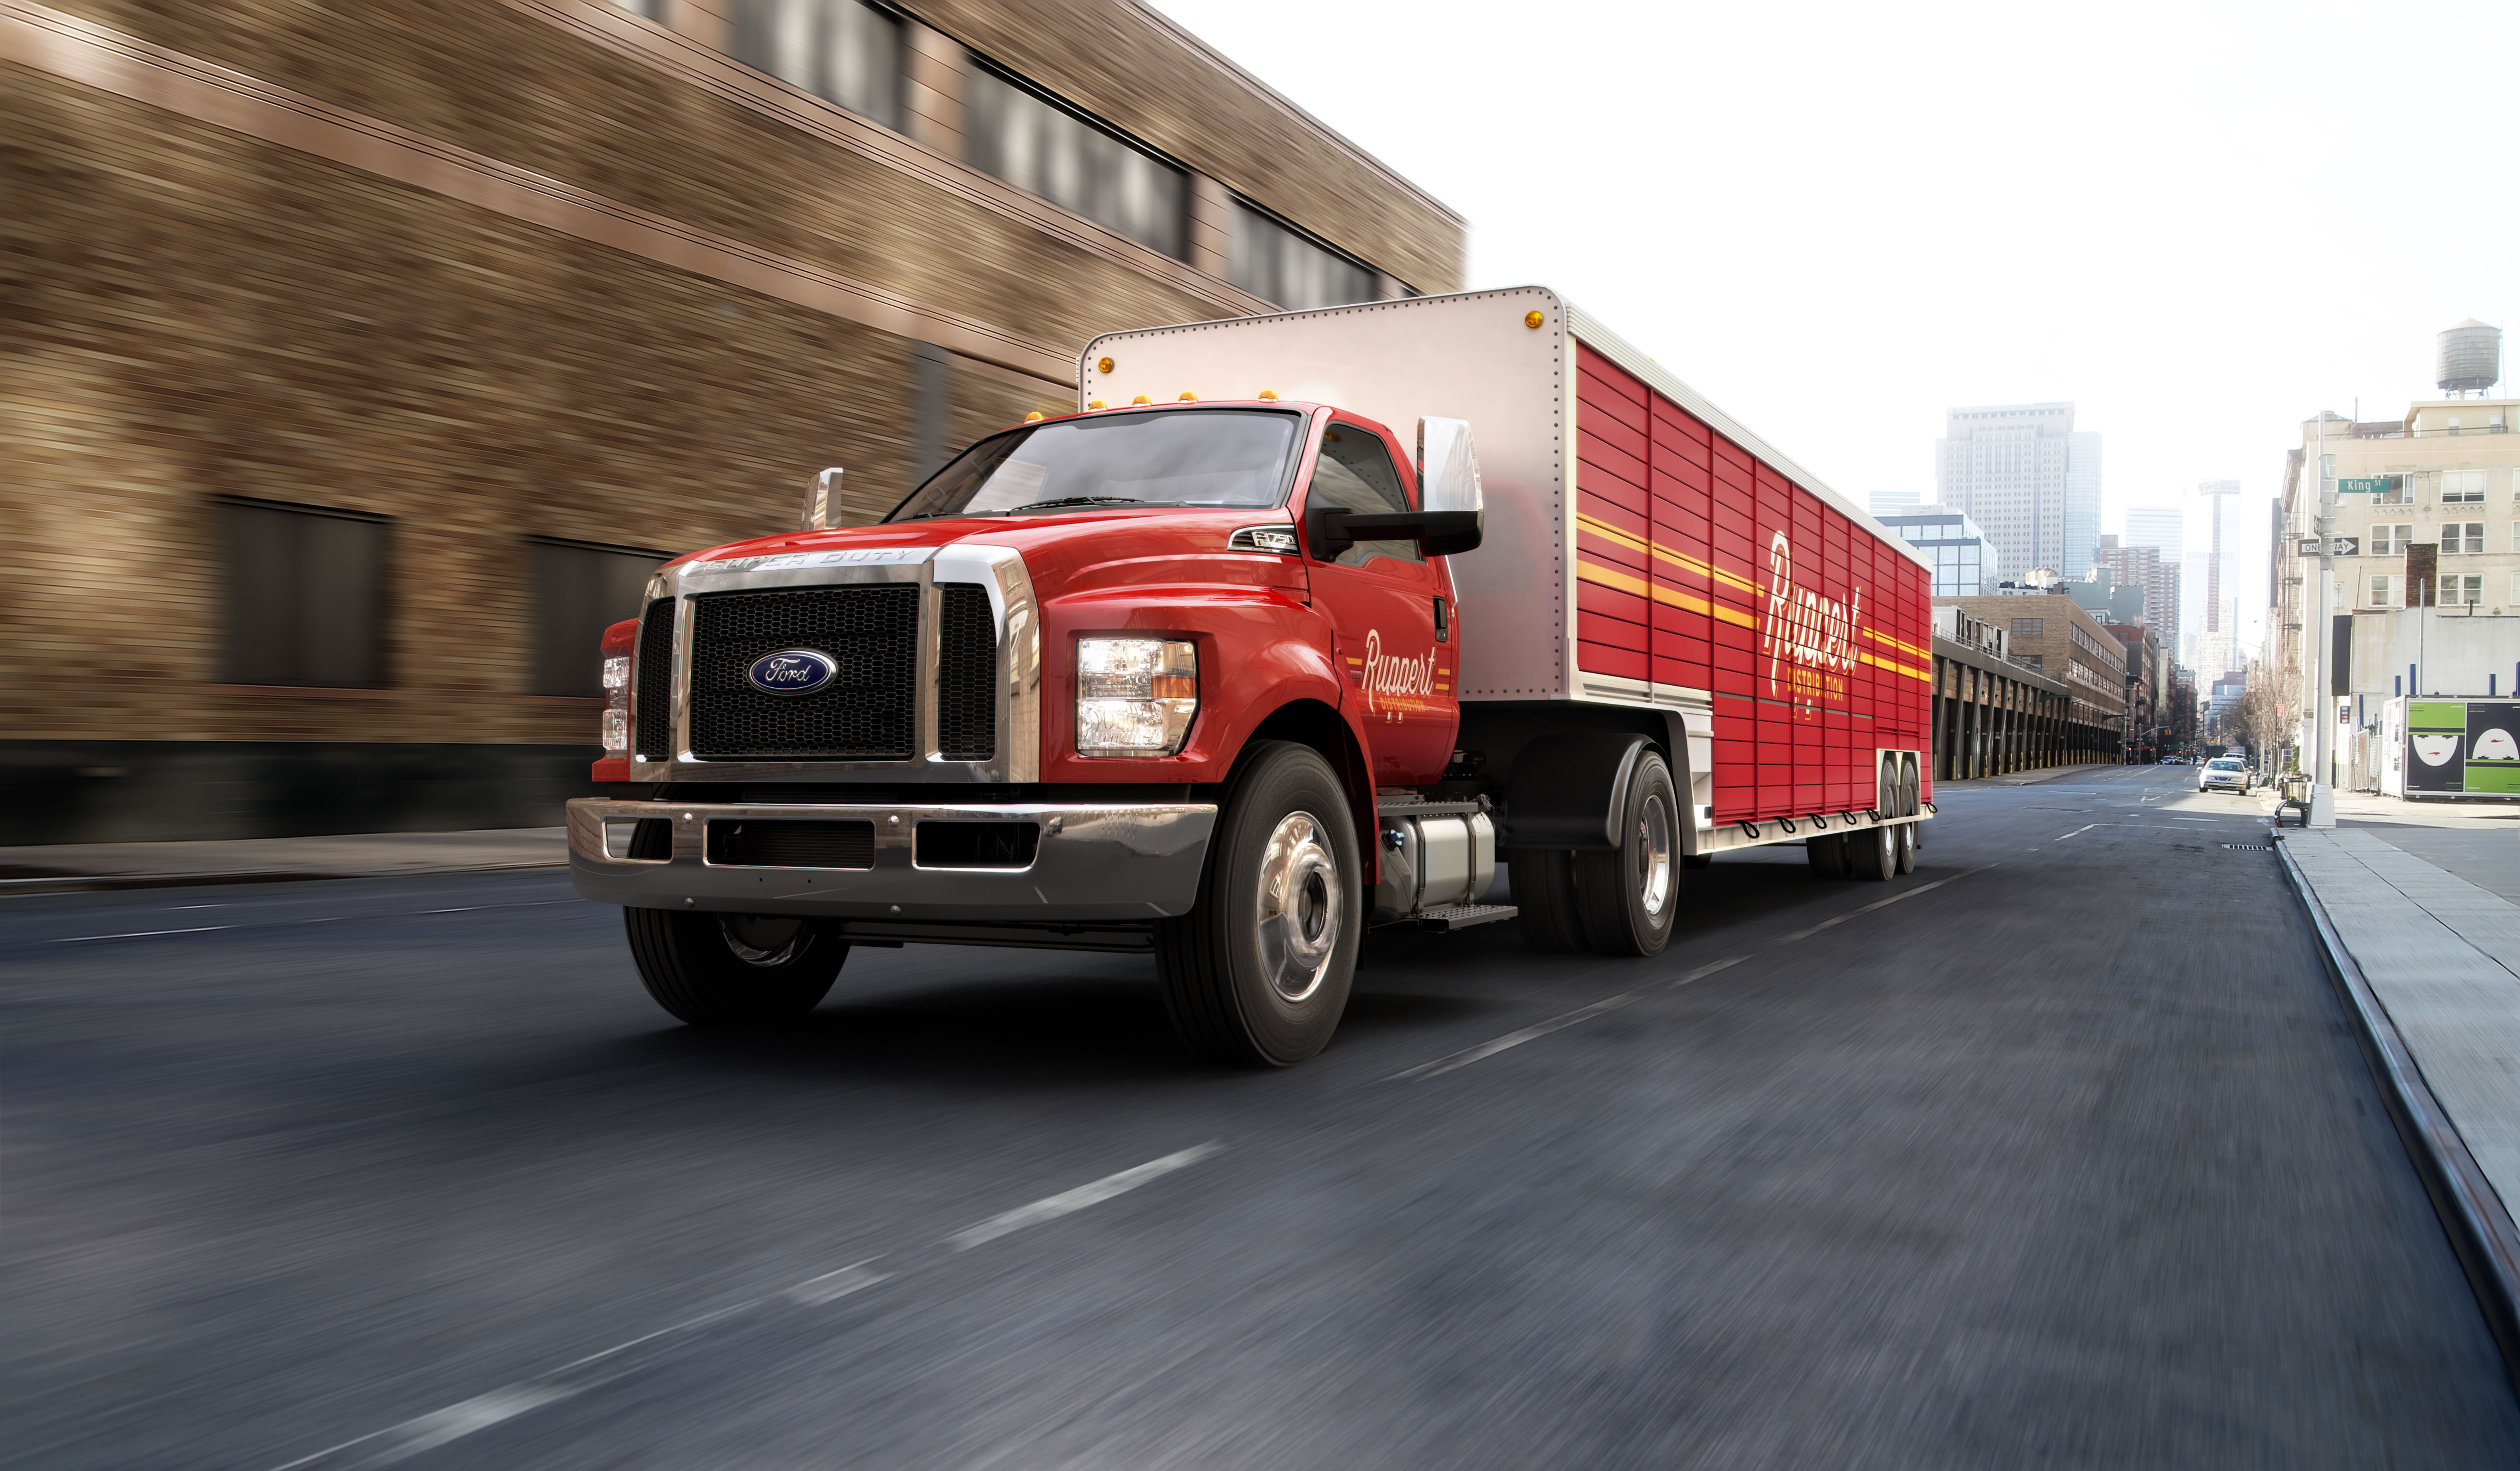 Ford, America's truck leader, today sets a new standard in medium-duty commercial work trucks with the all-new Ford F-650/F-750 - the toughest, great value and work-ready Ford medium-duty trucks ever. (Photo: Business Wire)